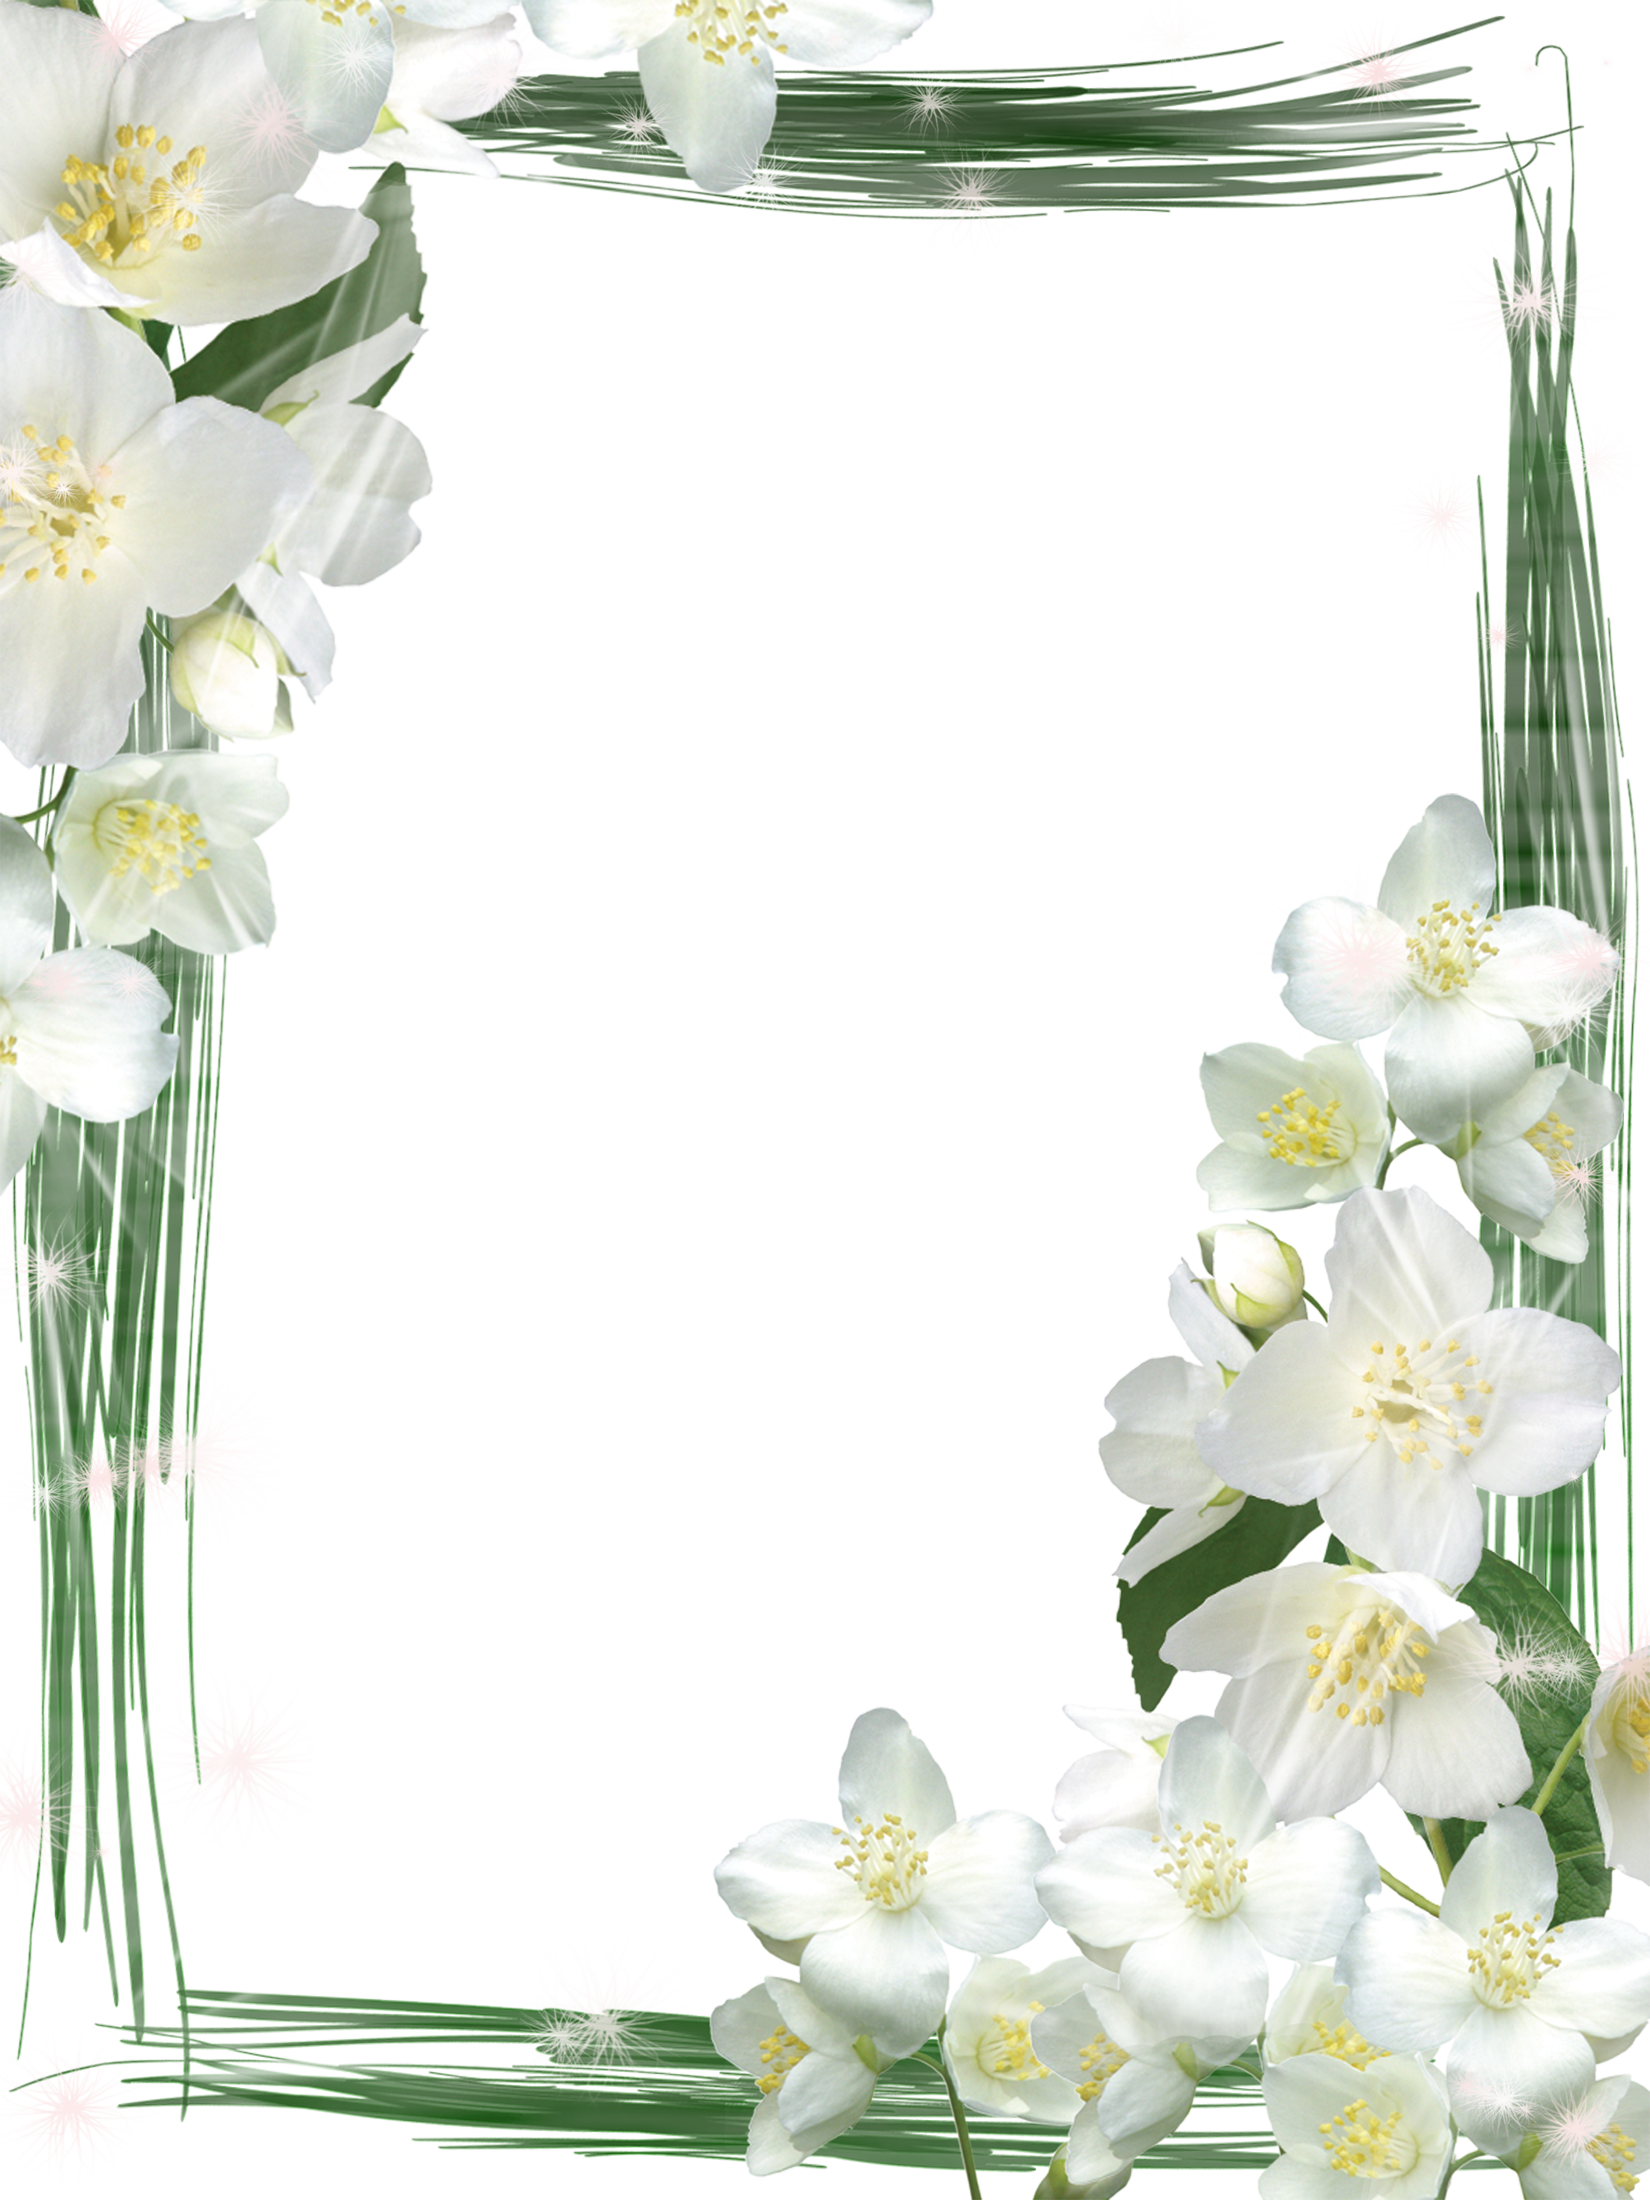 Transparent Green Frame With White Flowers Gallery Yopriceville High Quality Images And Transparent Png Free C Flower Frame Png Flower Frame White Flowers